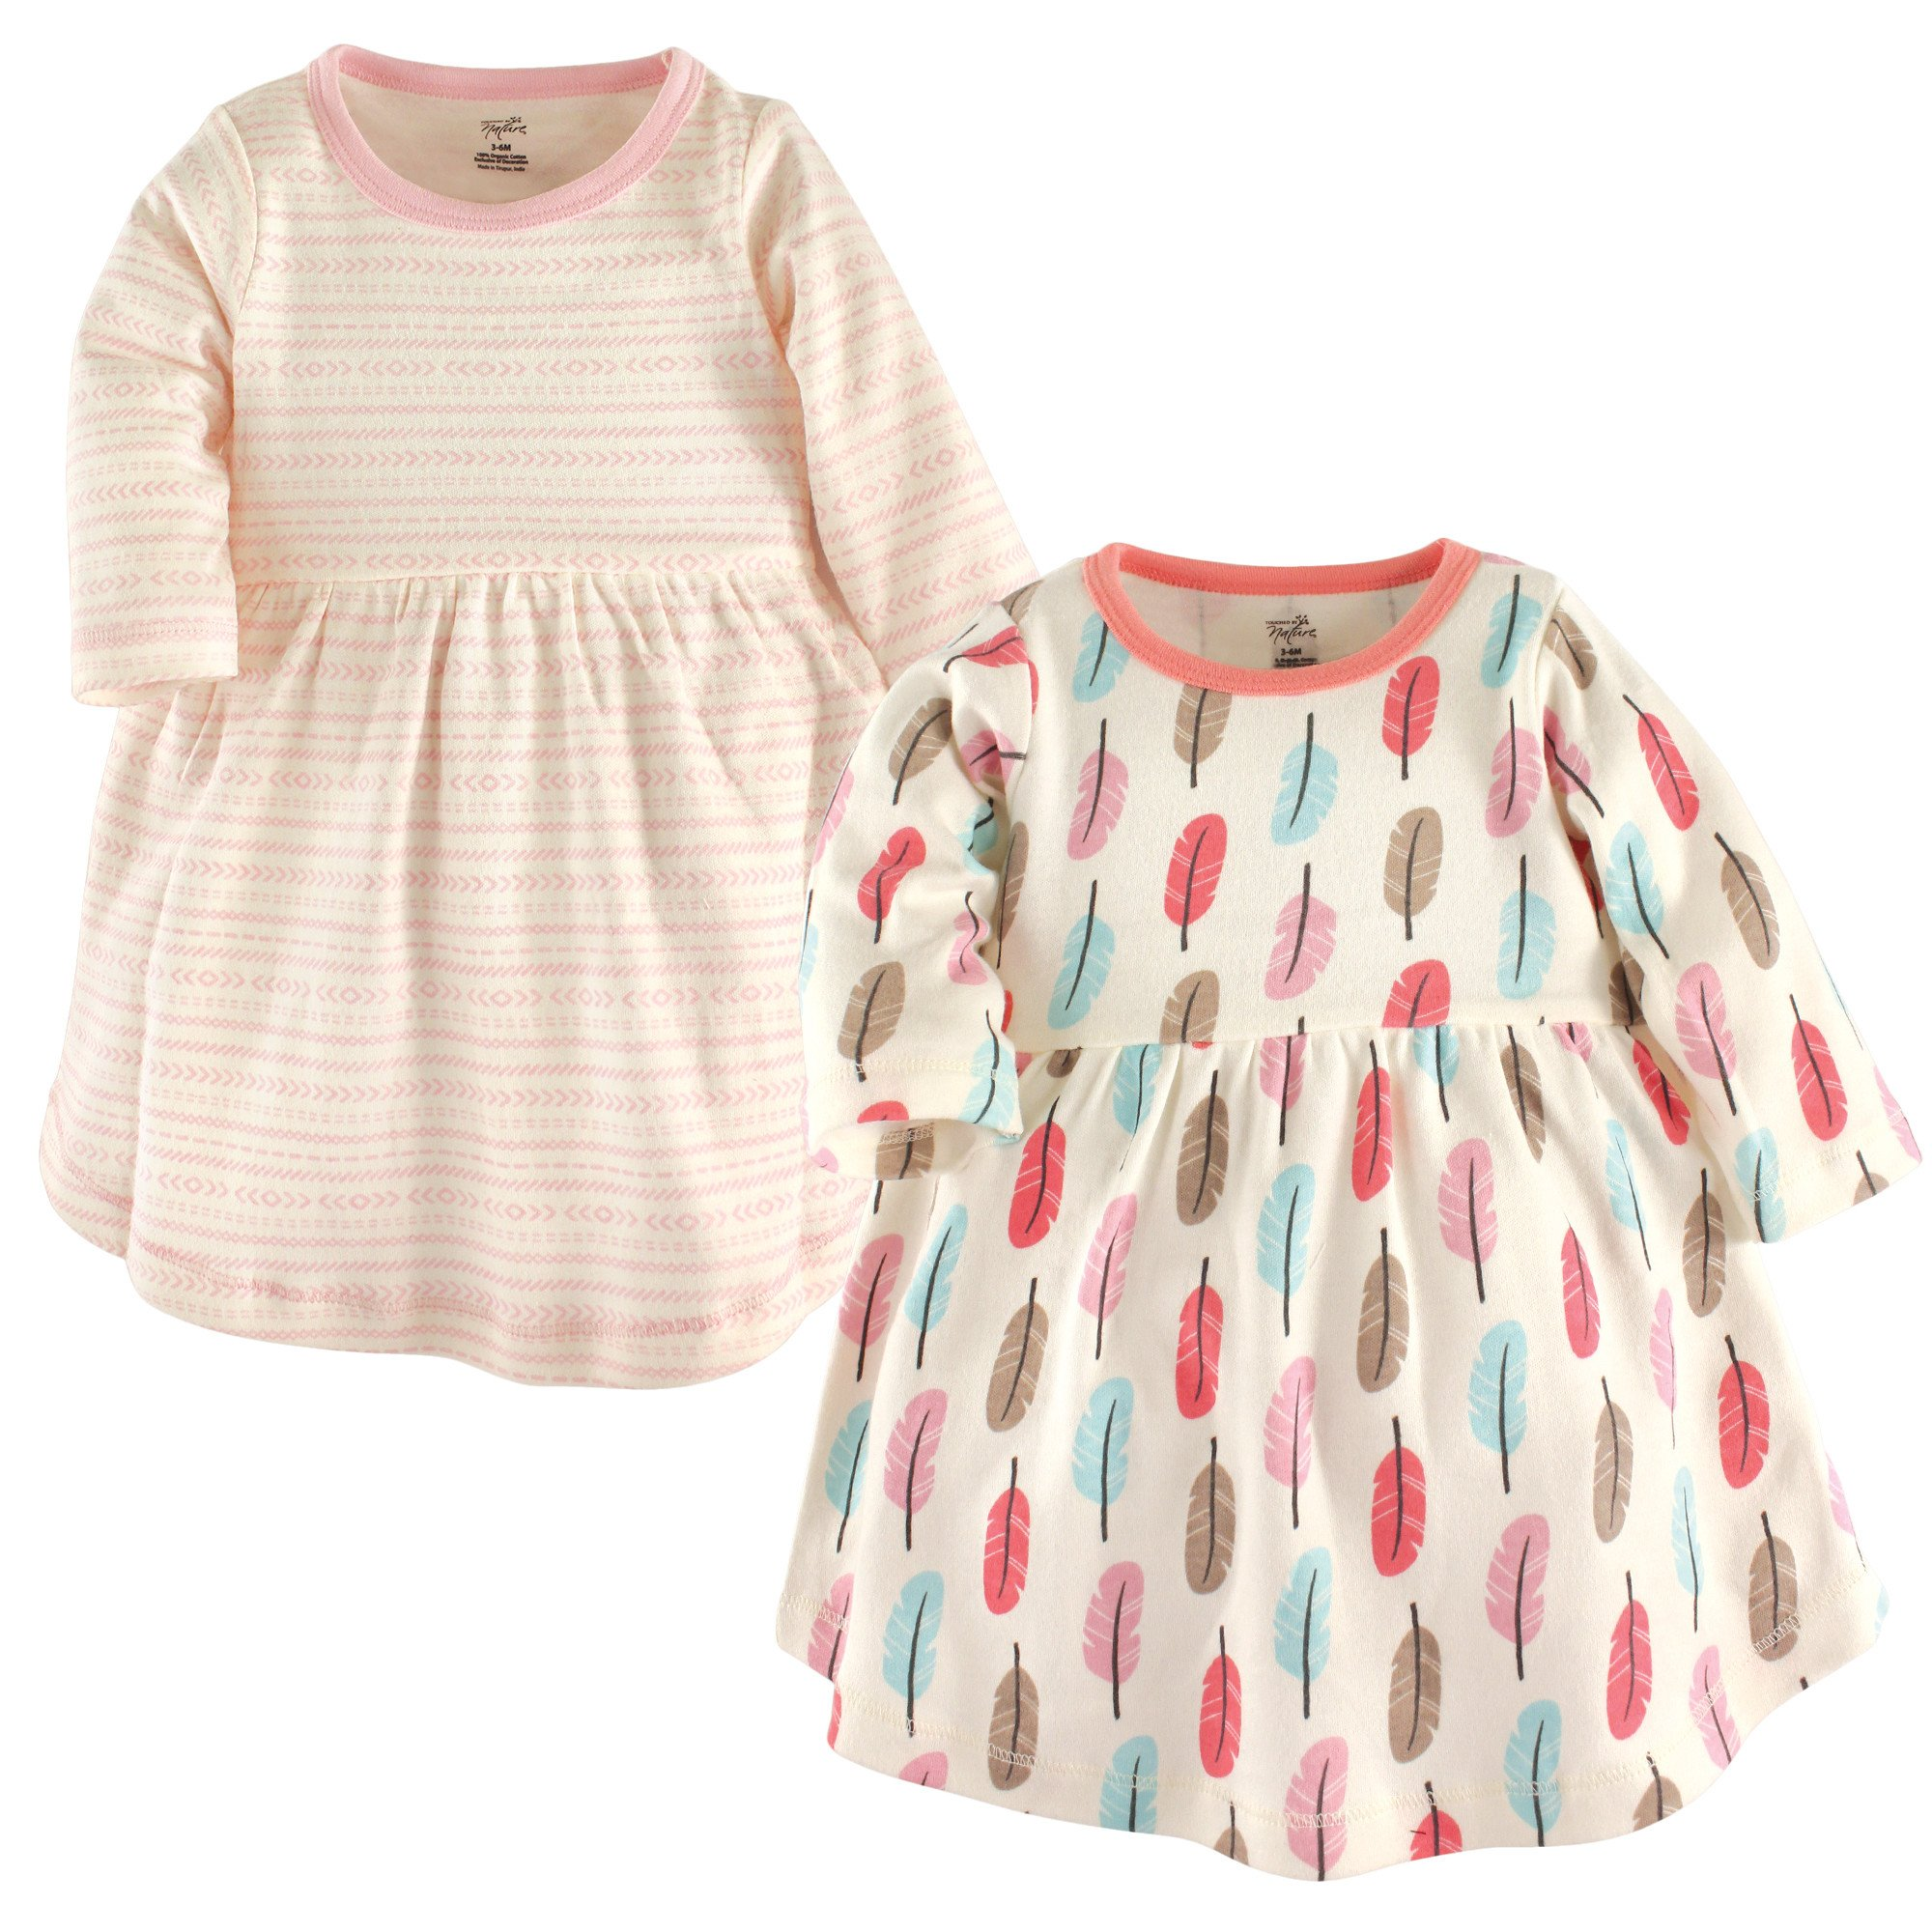 Touched by Nature Baby Girls 2-Pack Organic Cotton Dress, Feathers, 2 Toddler